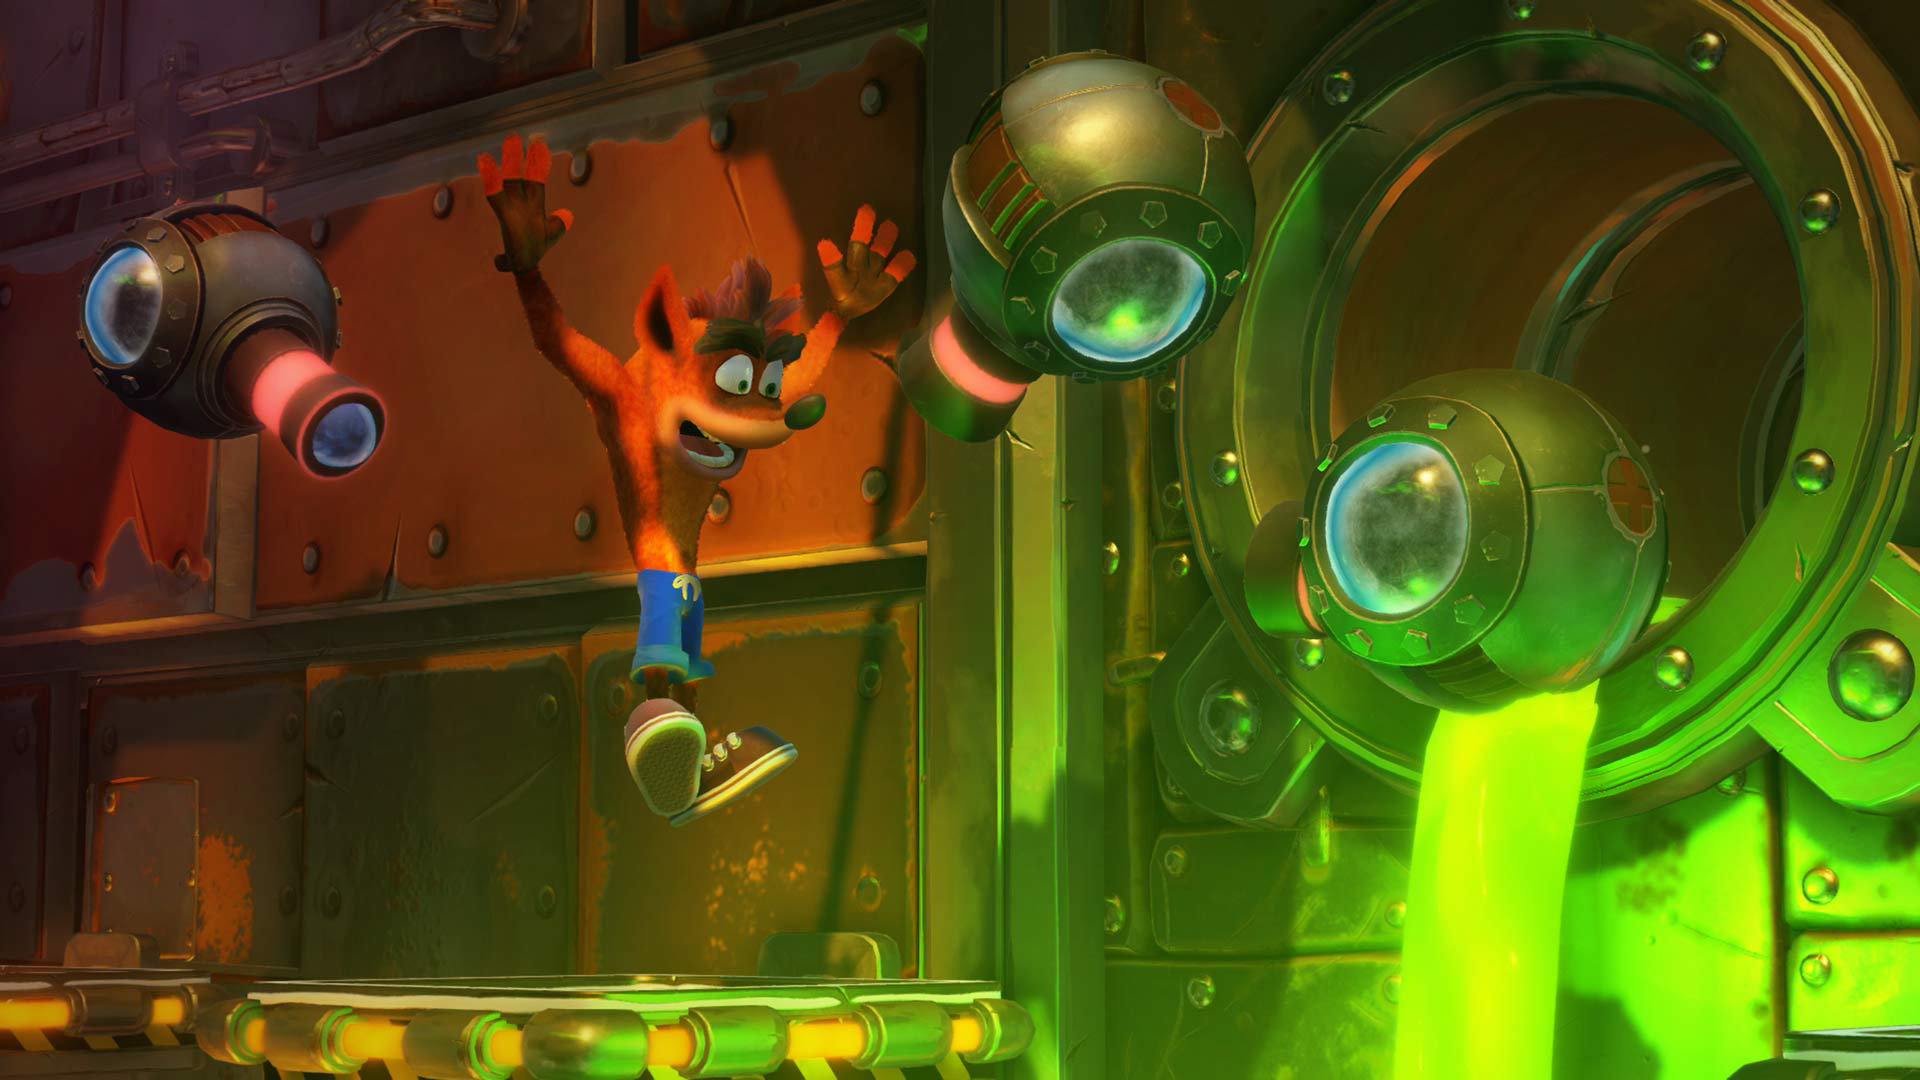 Crash Bandicoot N.Sane Trilogy,Grand Theft Auto V,Top 10 UK Sales Chart,چارت فروش هفتگی کشور انگلستان,Fallout 4,Agents of Mayhem,Mario Kart 8 Deluxe,DOOM,Dishonored 2,Tom Clancy's Rainbow Six Siege,Splatoon 2,Forza Horizon 3,چارت بازی‌های پرفروش انگلستان,صدرنشینی بازی Crash Bandicoot در چارت بازی‌های پرفروش هفته انگلستان,کرش بندیکوت